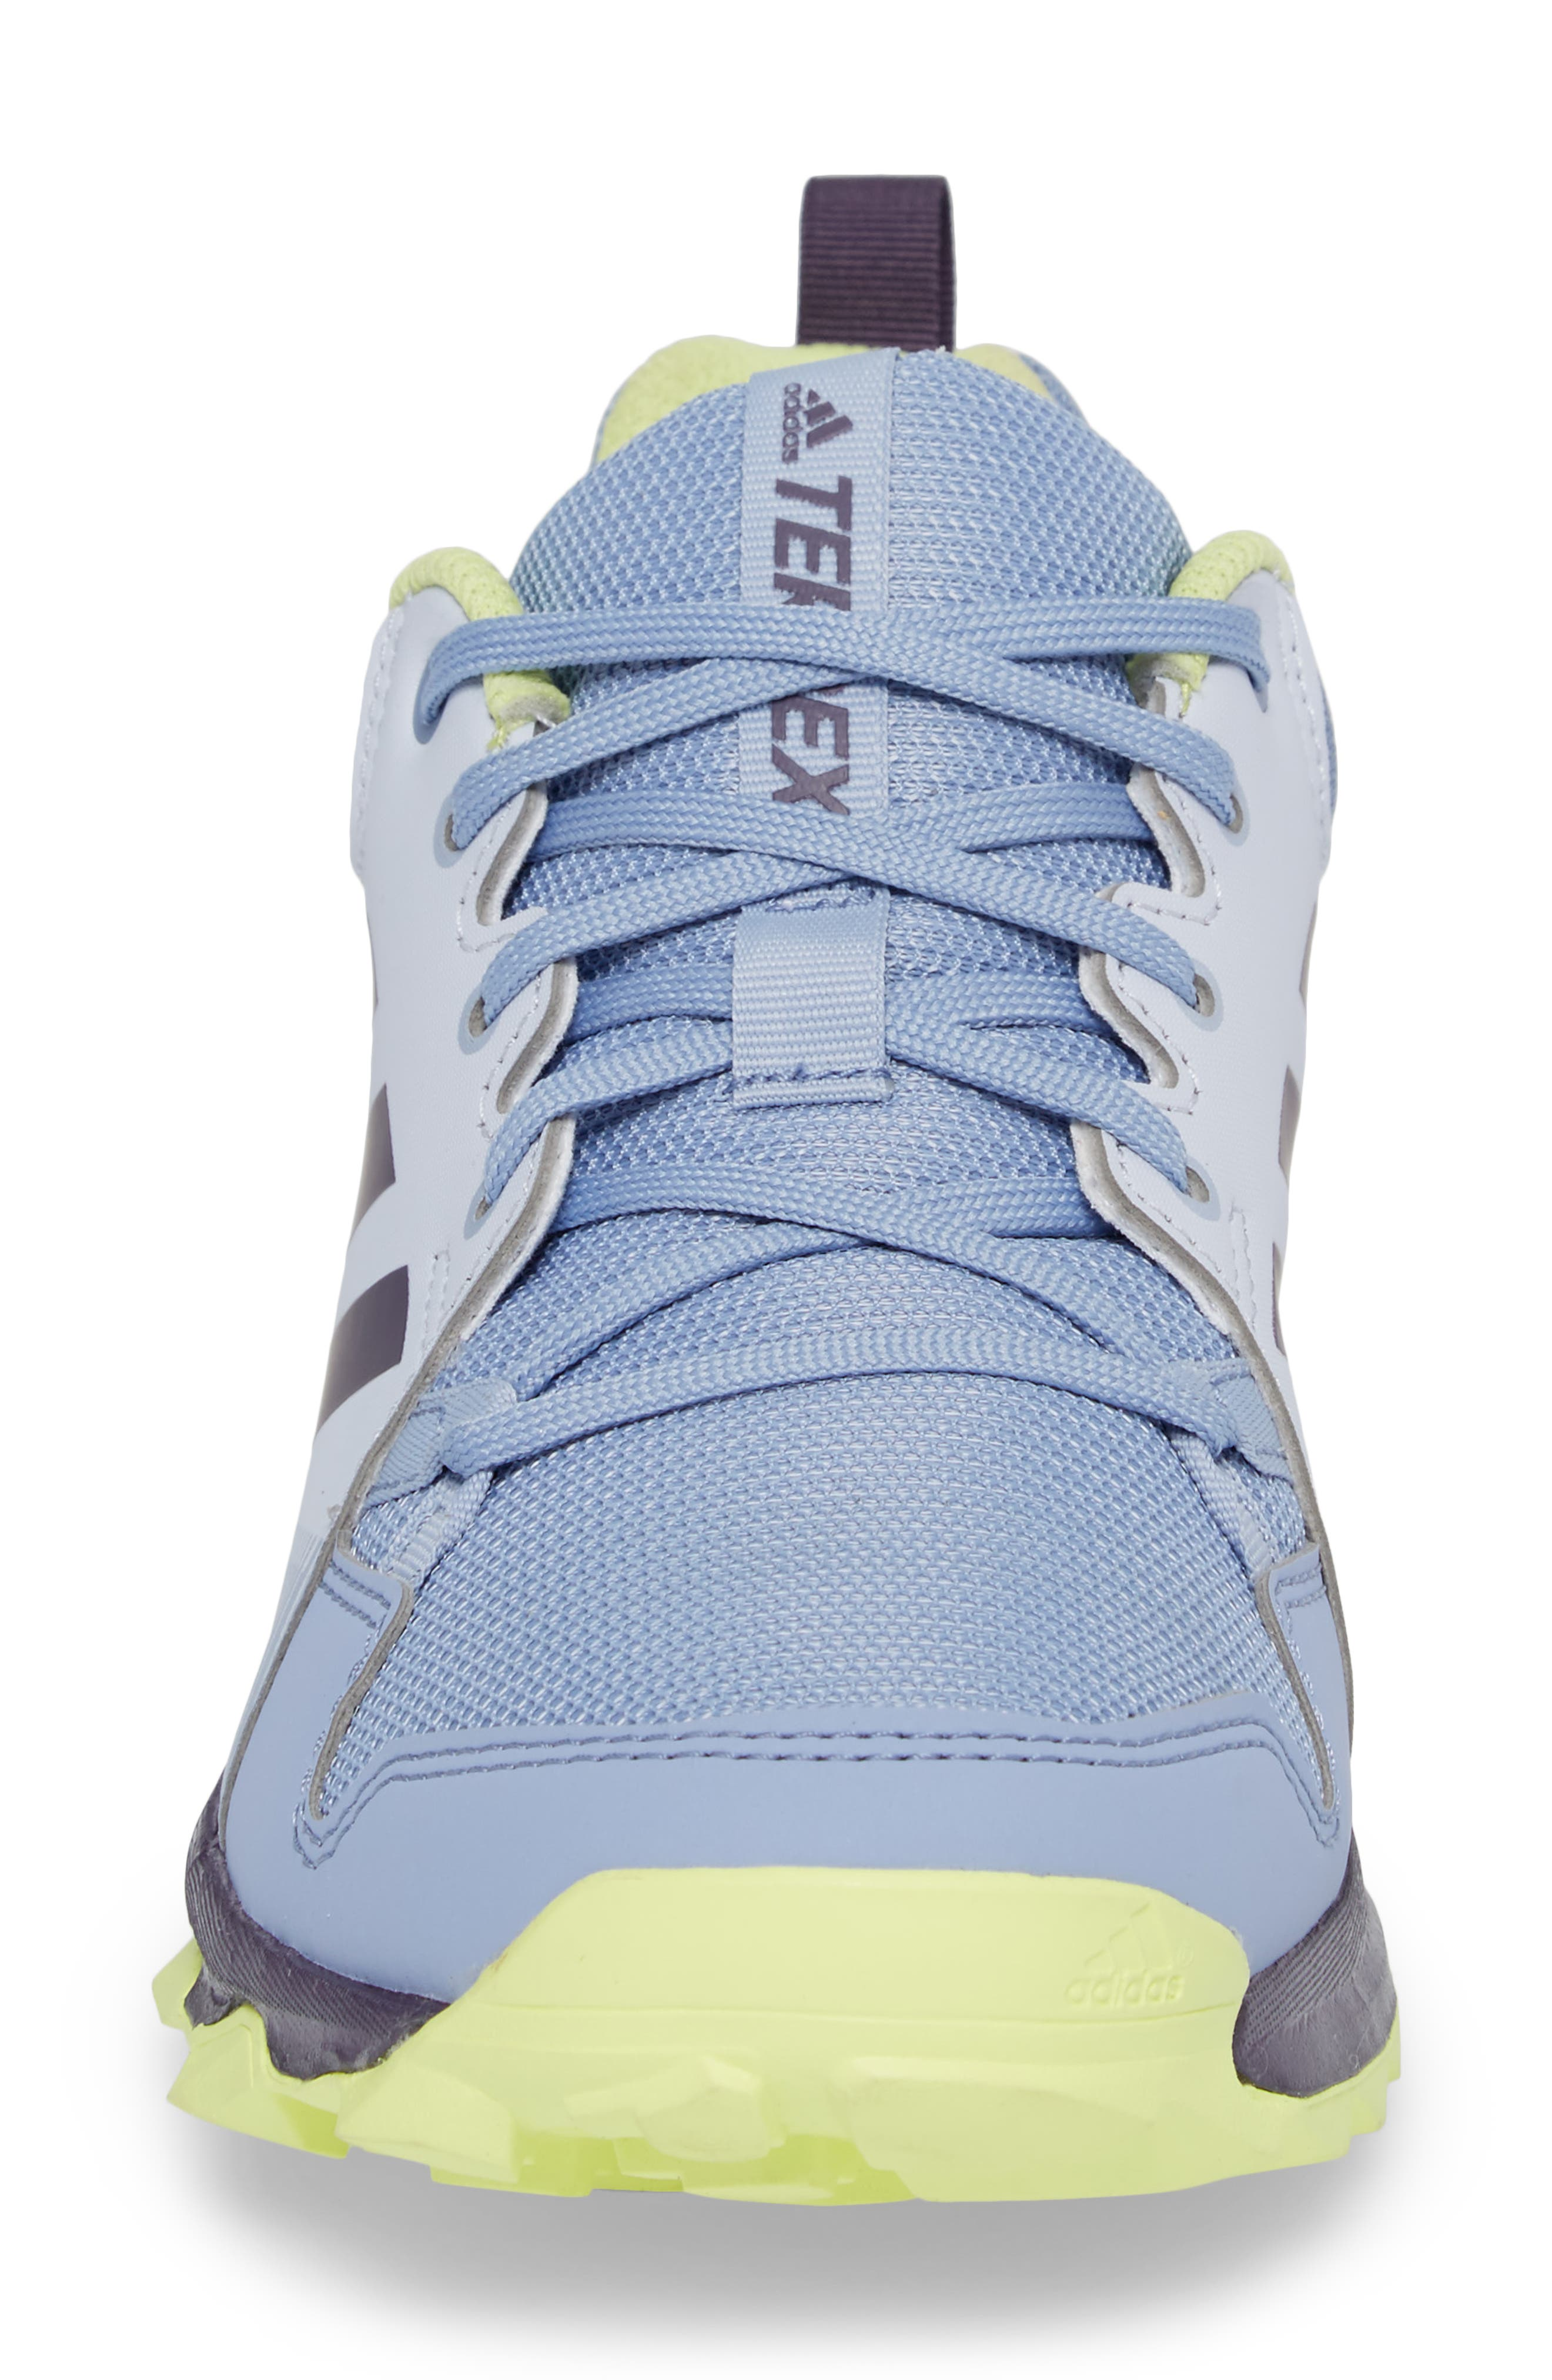 'Tracerocker' Athletic Shoe,                             Alternate thumbnail 4, color,                             Aero Blue/ Purple/ Yellow